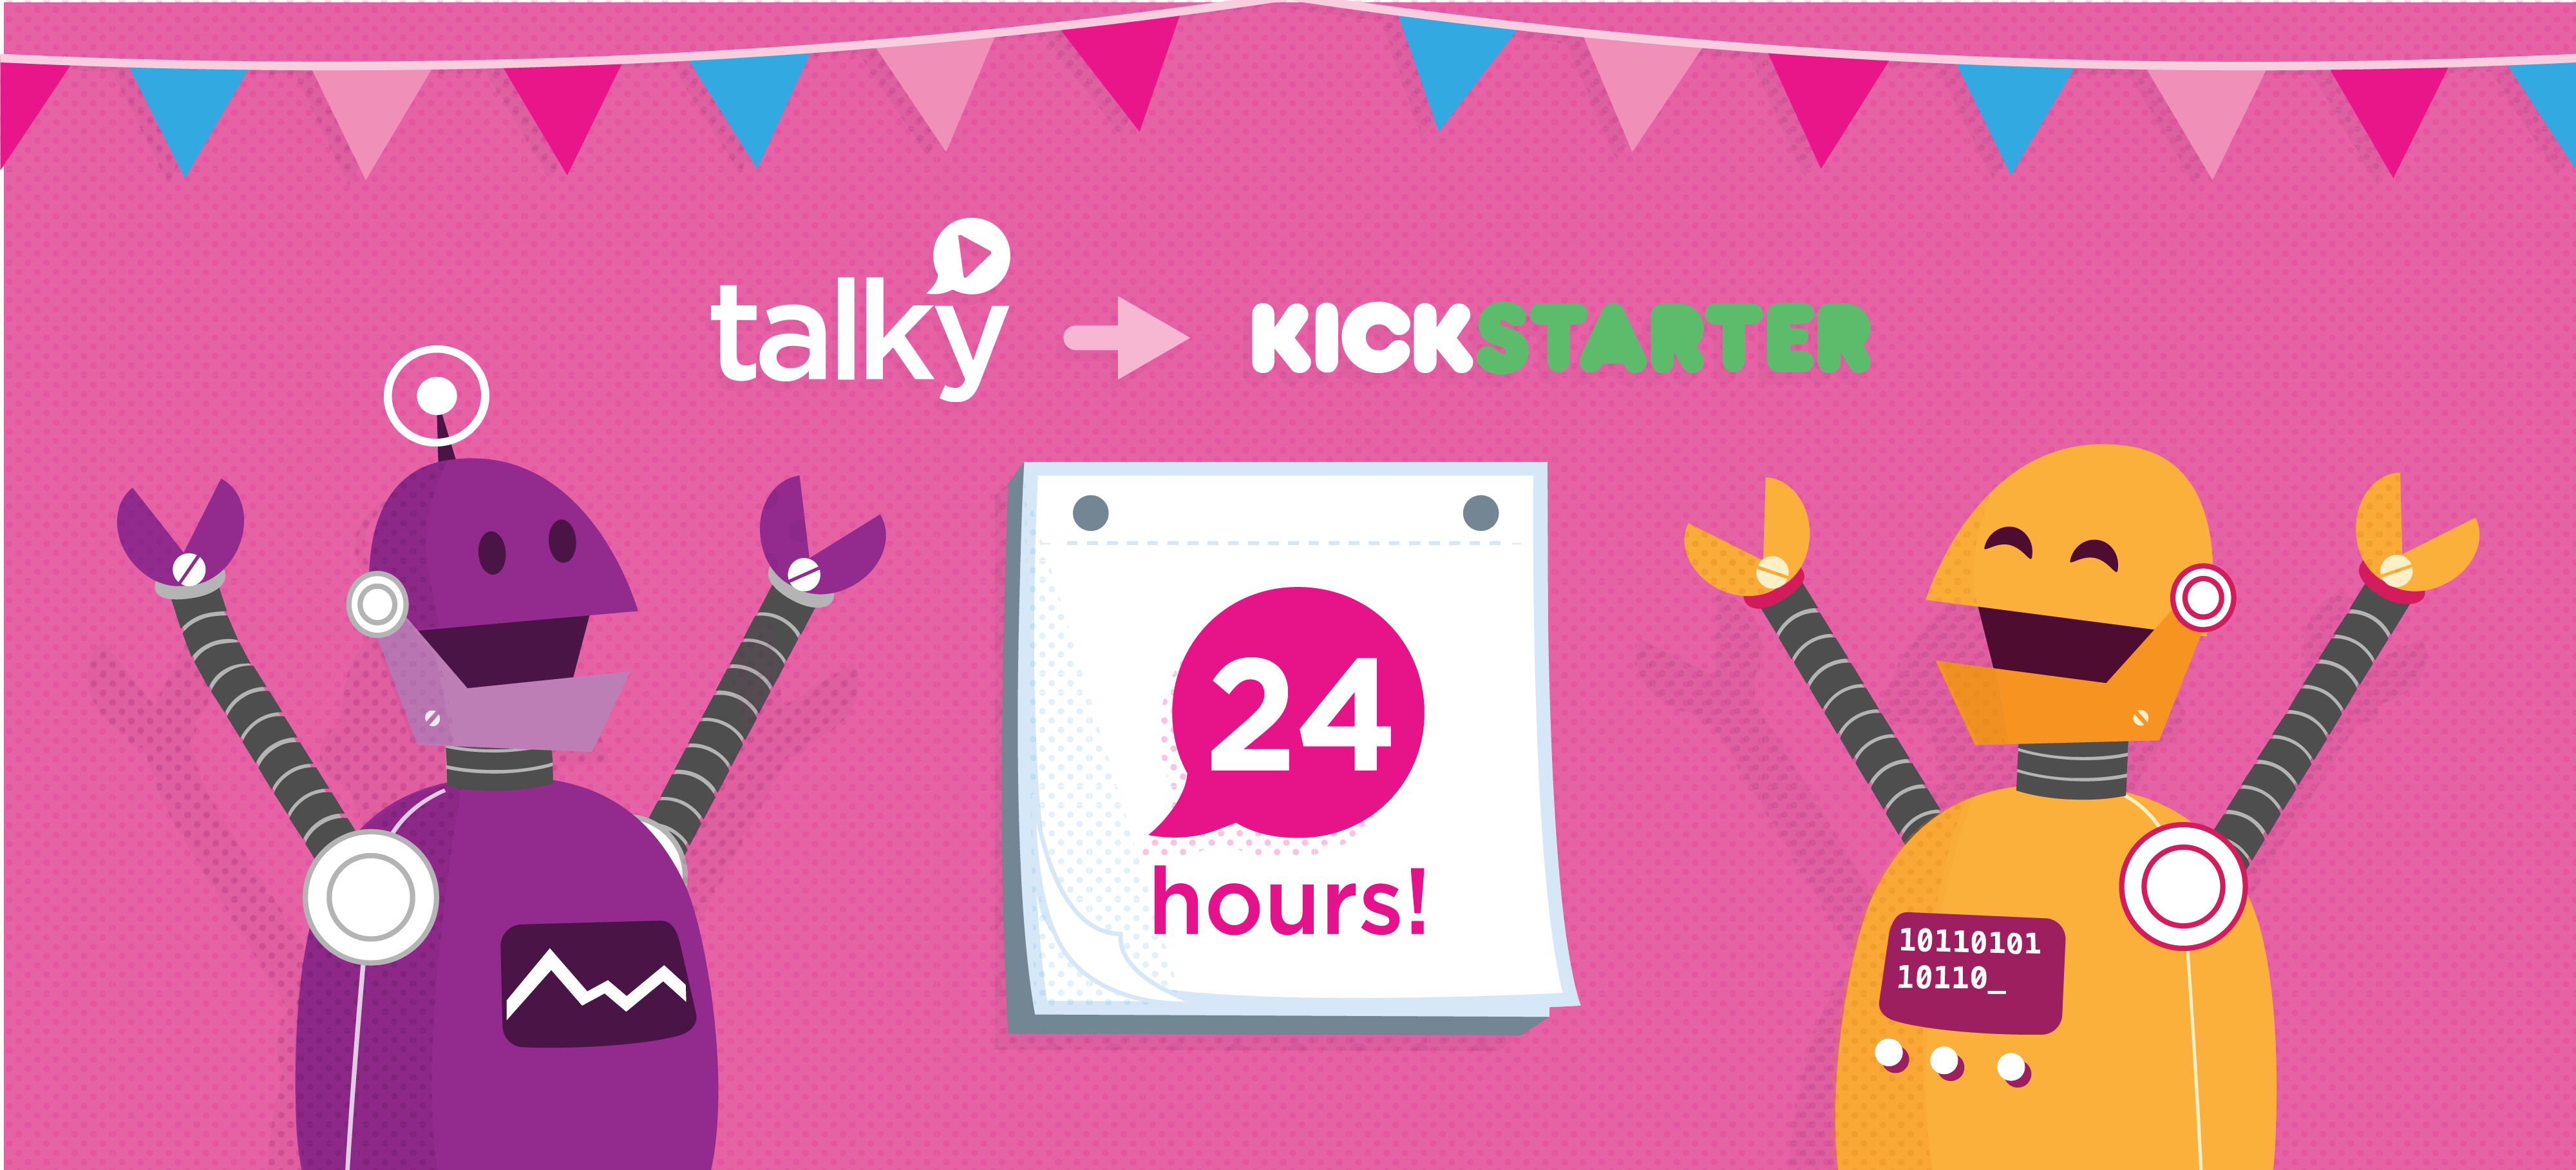 Talky Kickstarter begins in 24 hours